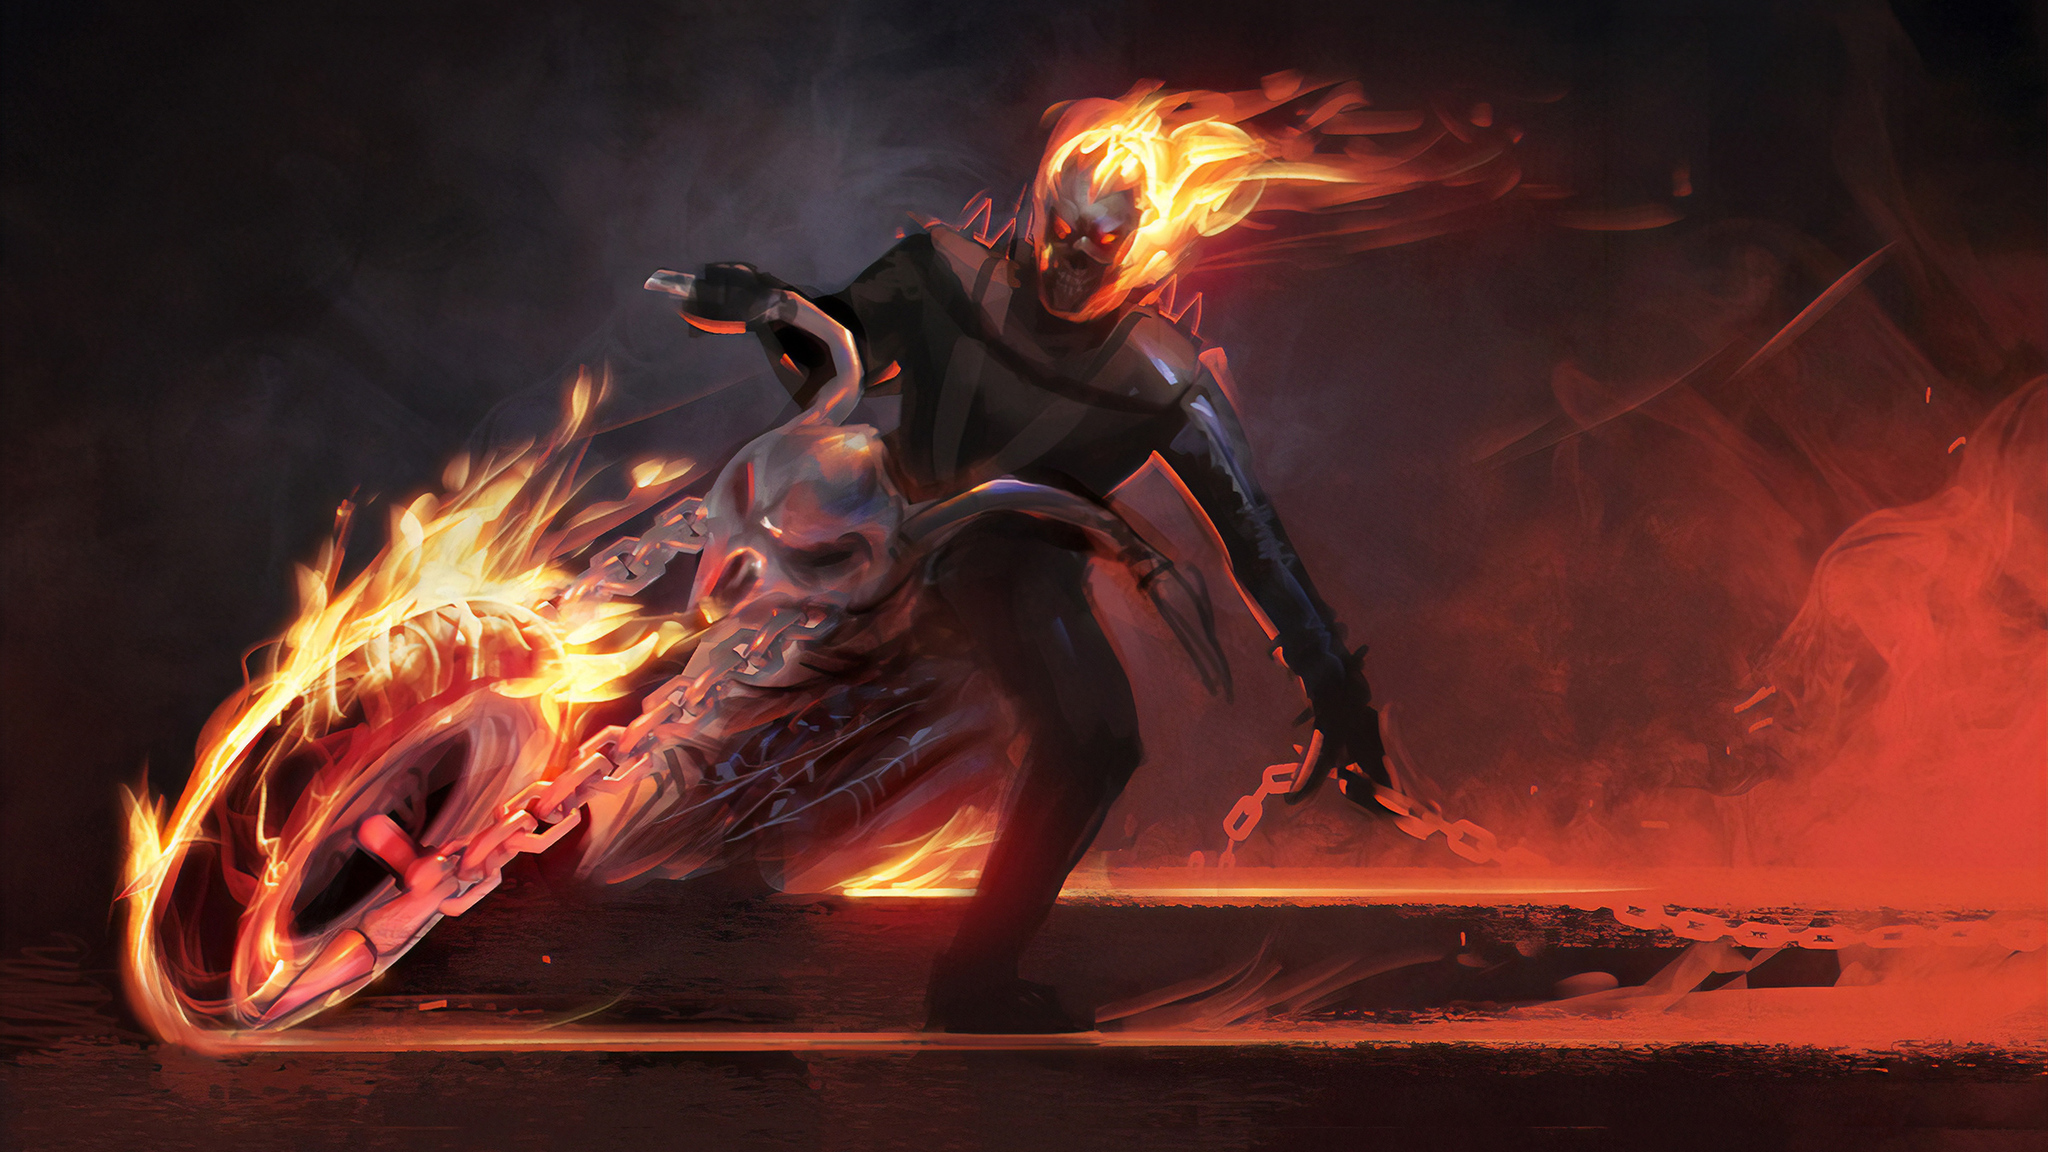 ghost-rider-spirit-of-vengeance-game-59.jpg